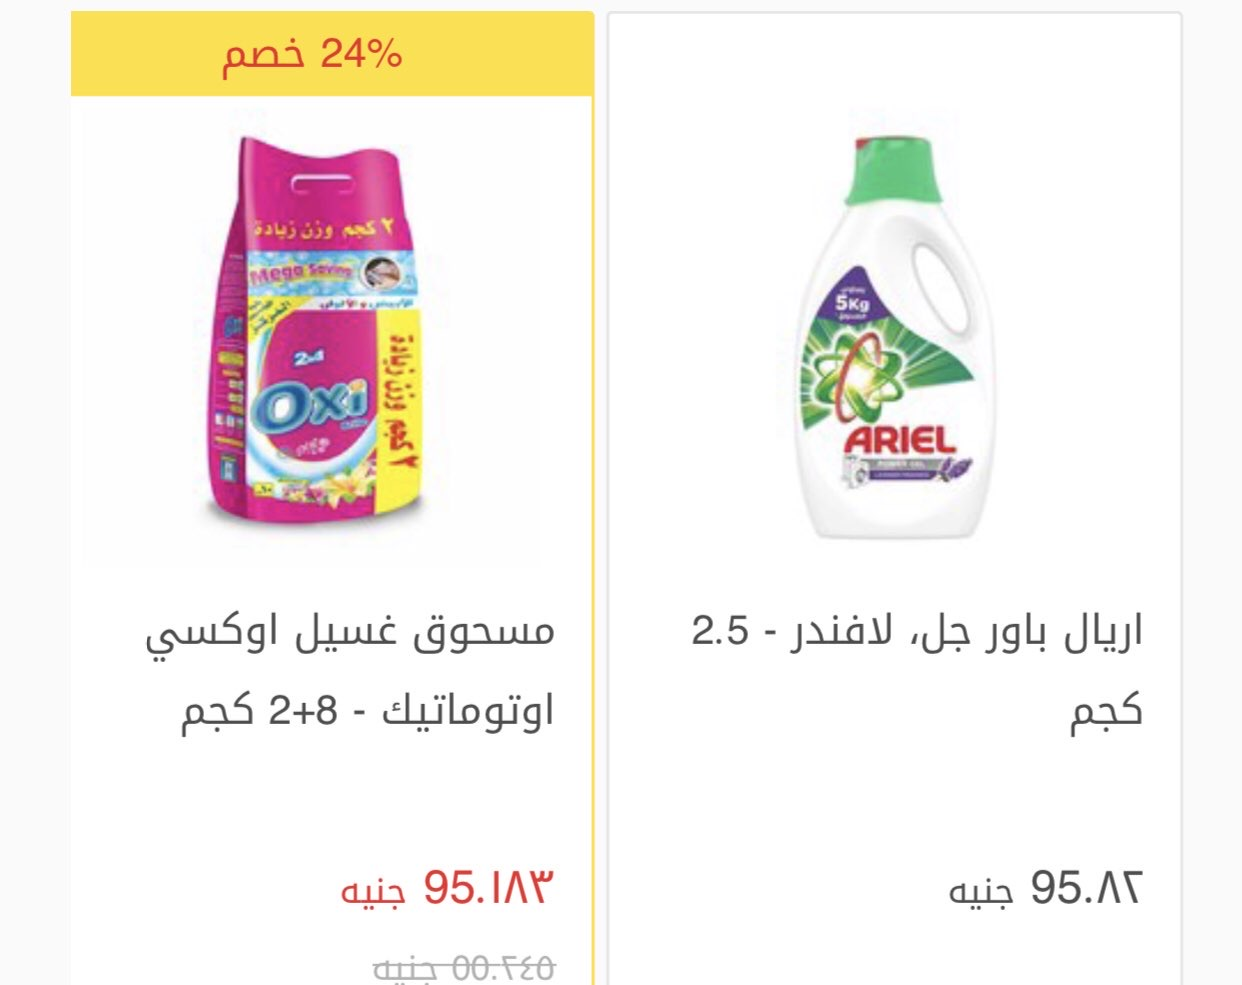 New Carrefour Egypt introduces 50 EGP discount codes on your first order 11